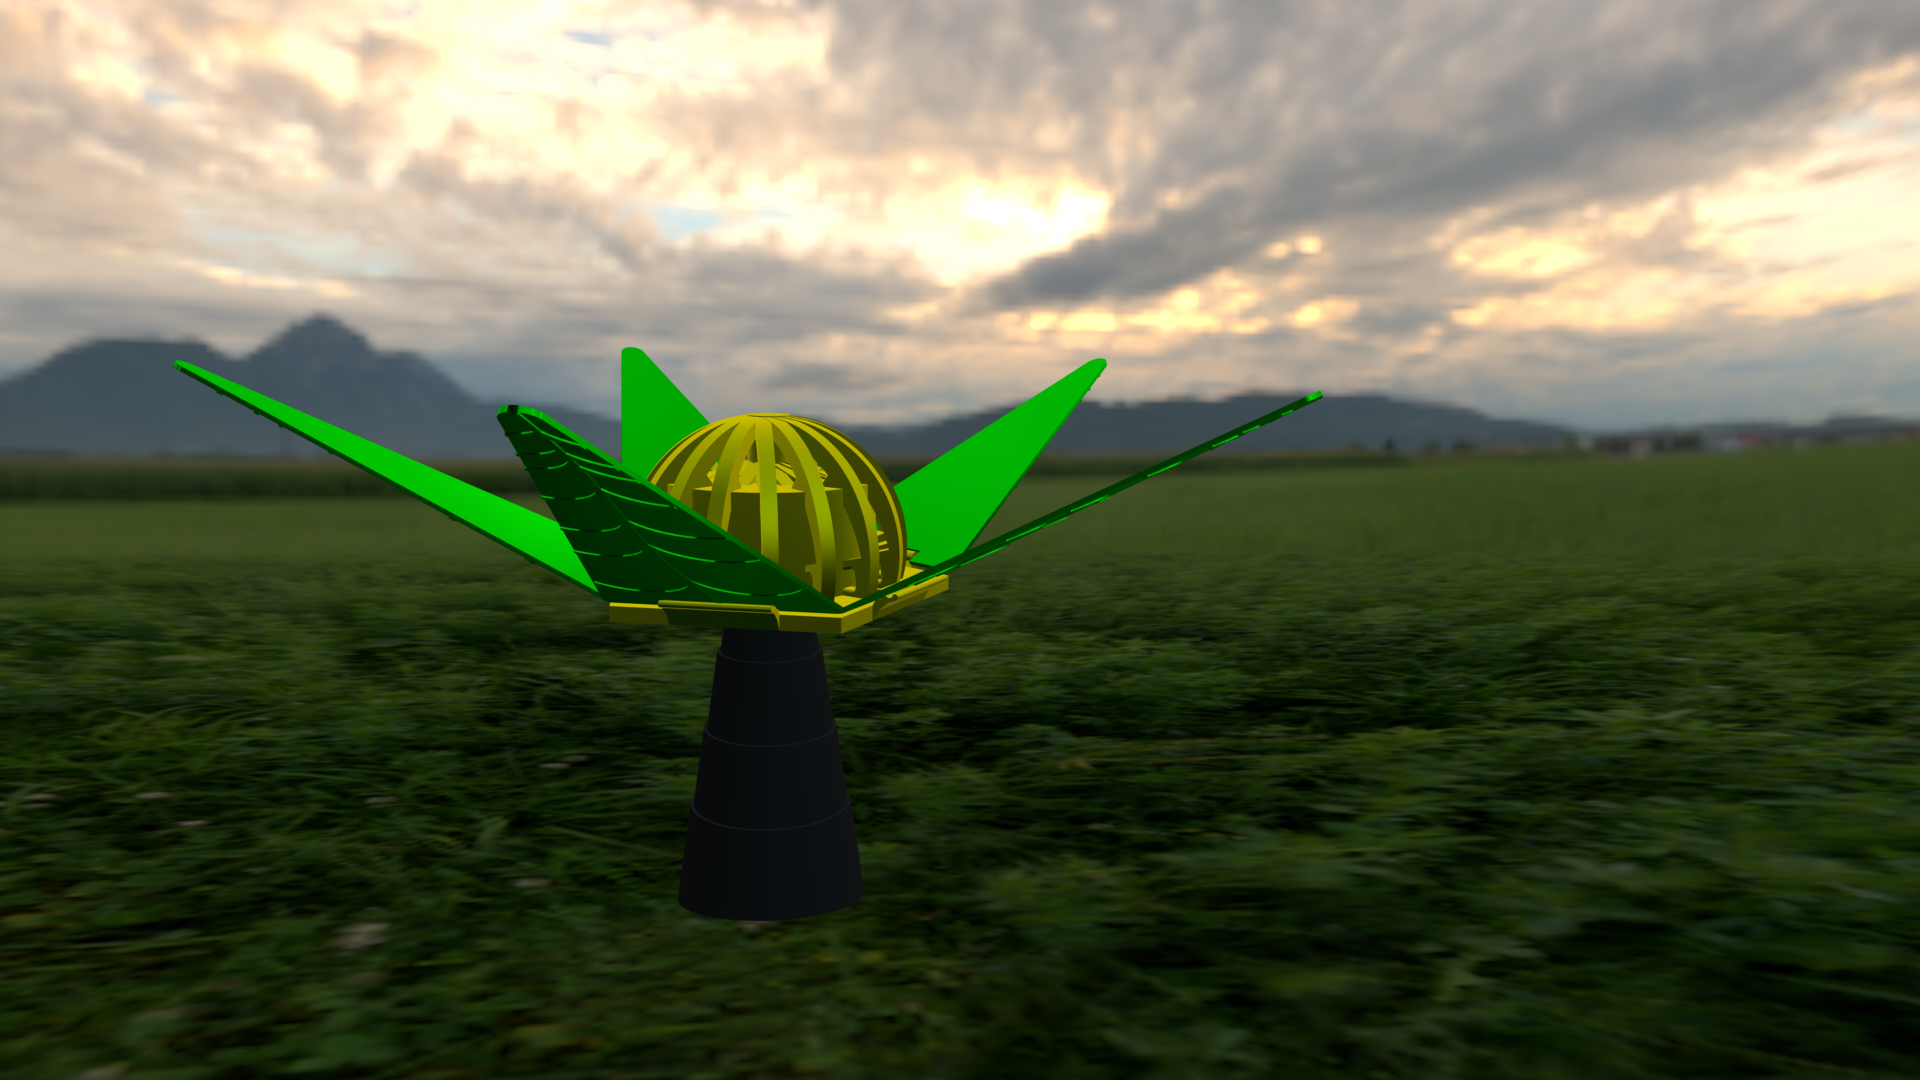 image-4.png Download free STL file Flower # 3DSPIRIT • 3D printer object, Quentin1997